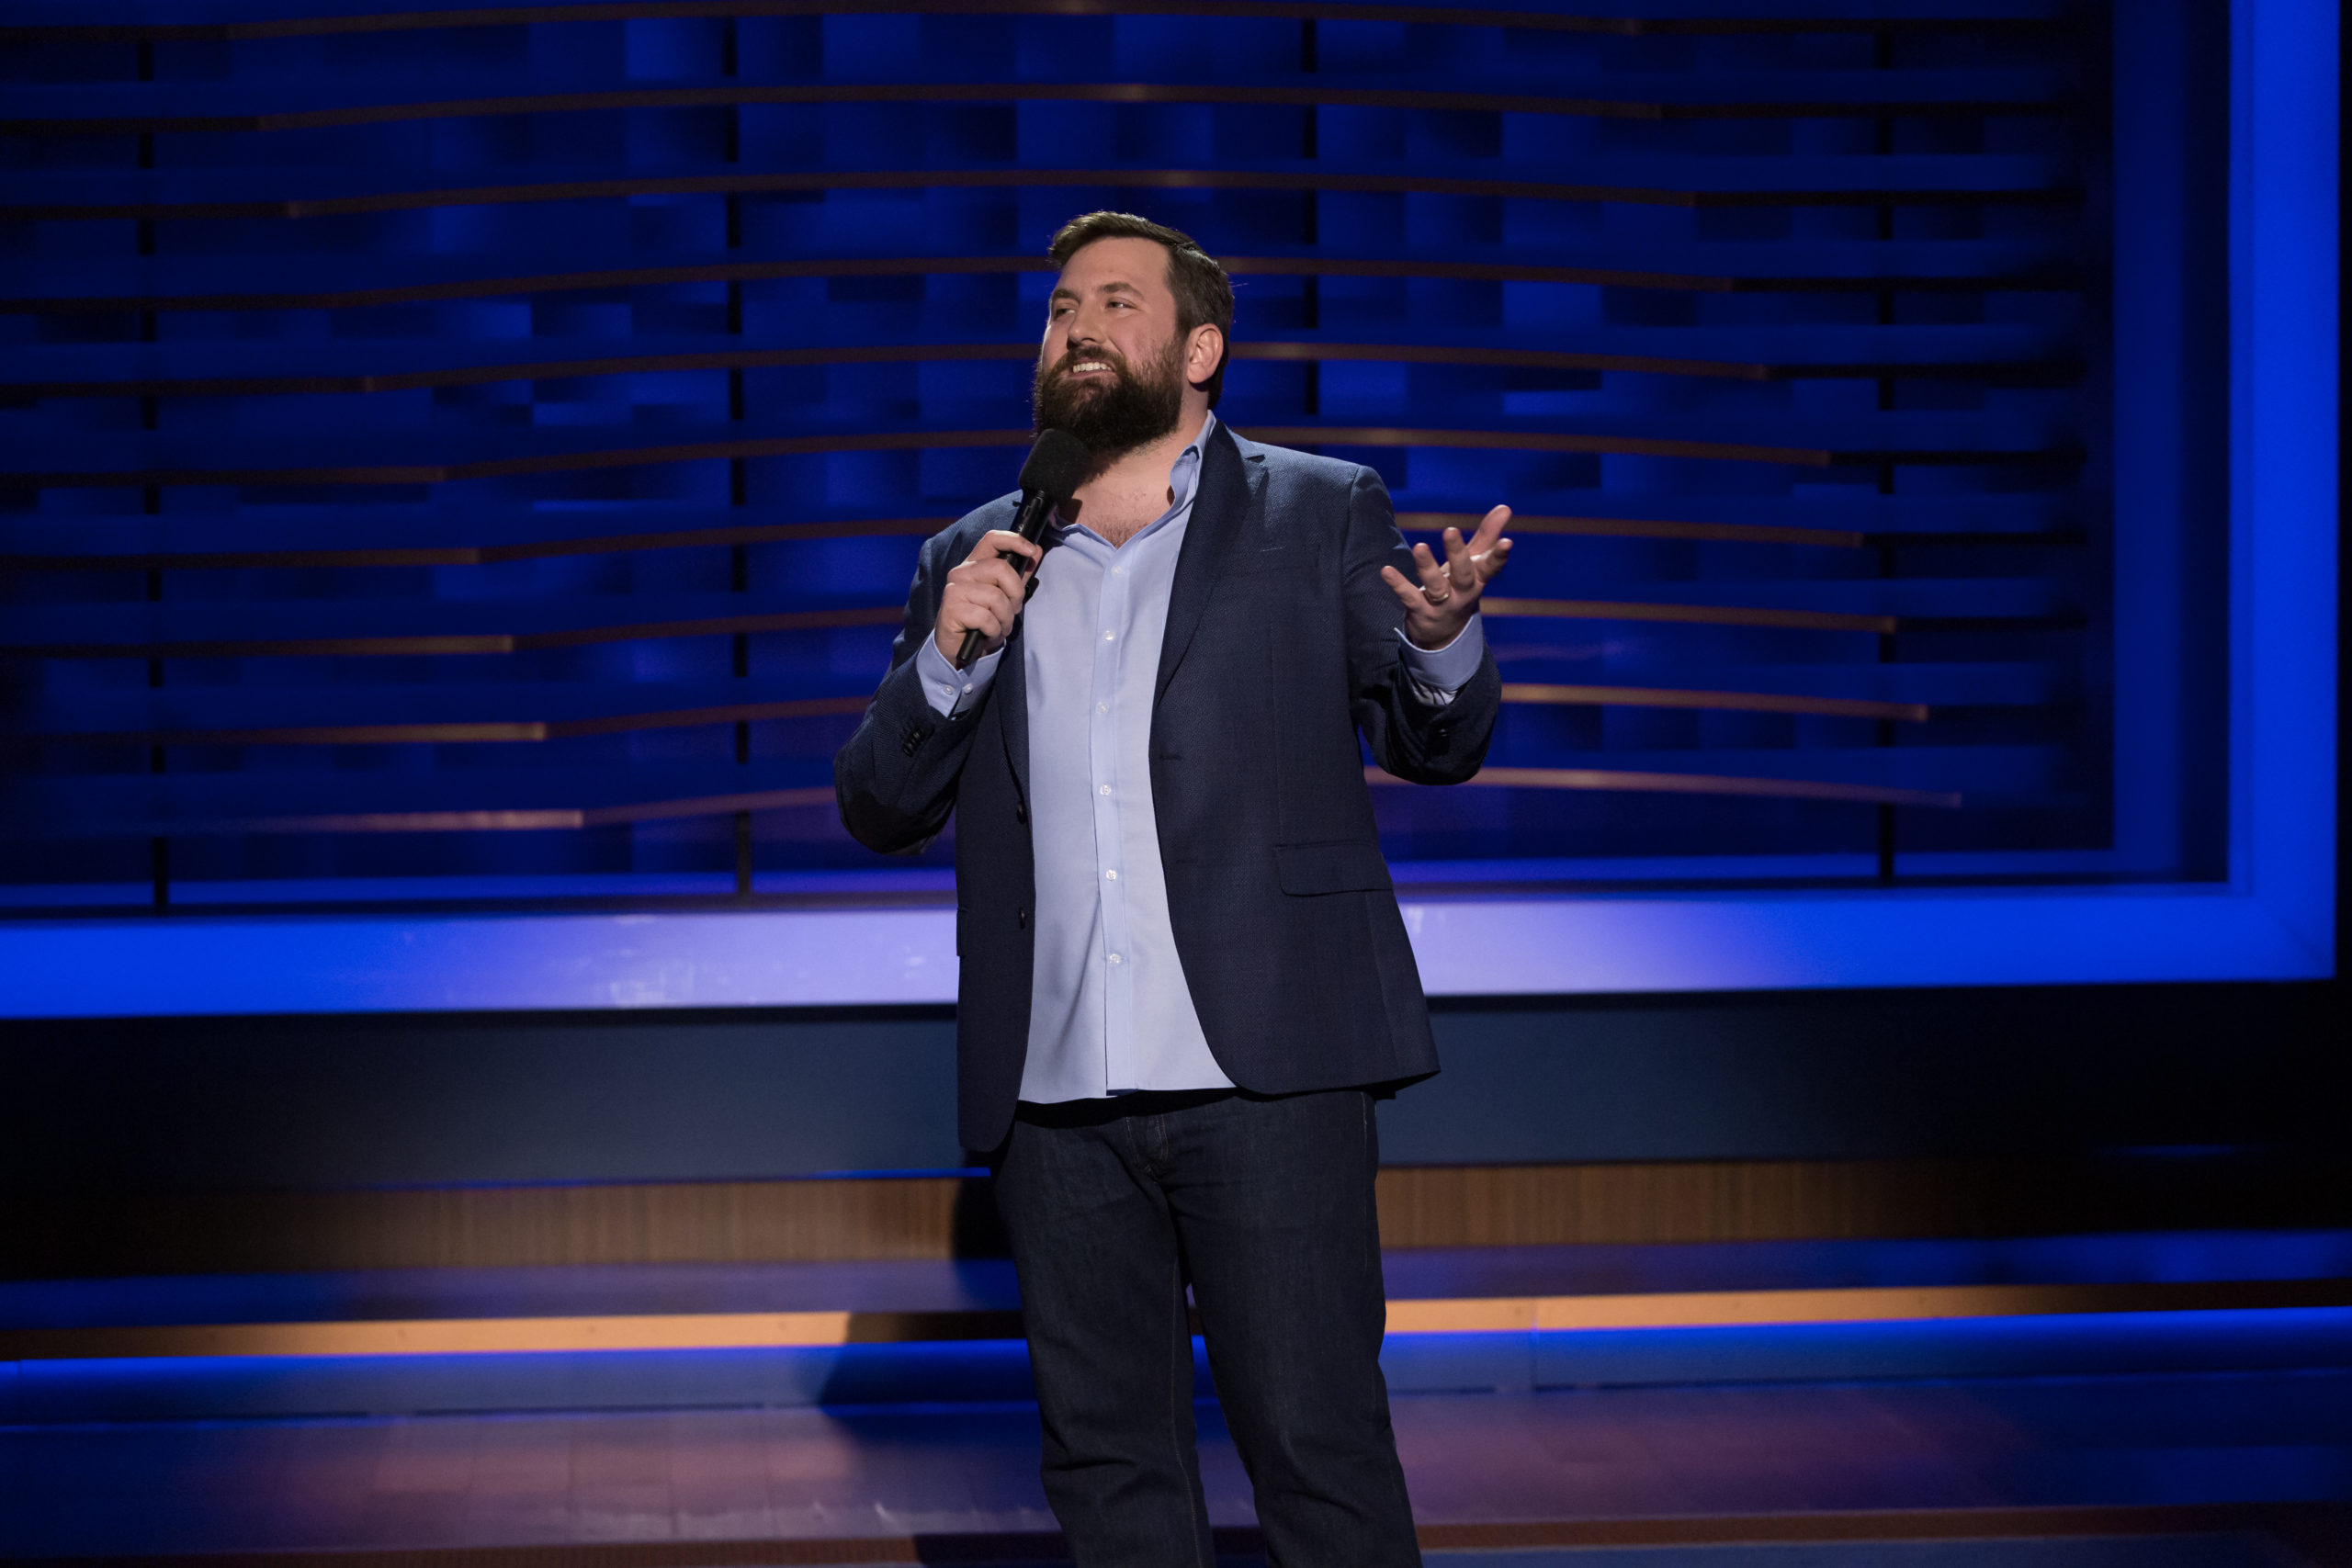 GARRETT MAKES TV DEBUT ON CONAN - Thursday, December 5th, 2019